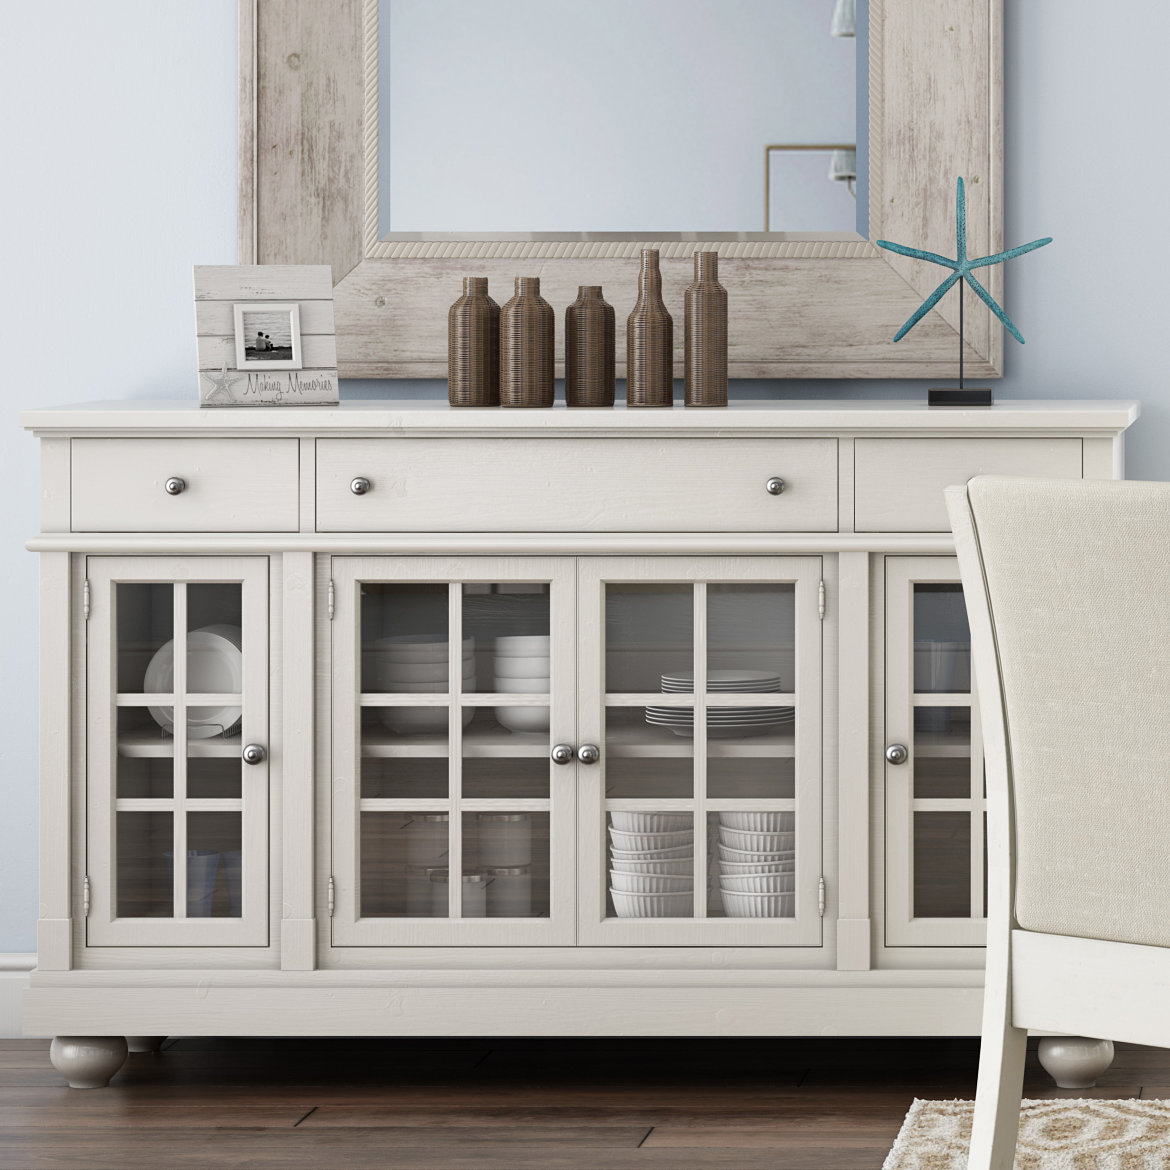 Farmhouse & Rustic Lark Manor Sideboards & Buffets | Birch Lane In Best And Newest Emmaline Sideboards (#9 of 20)